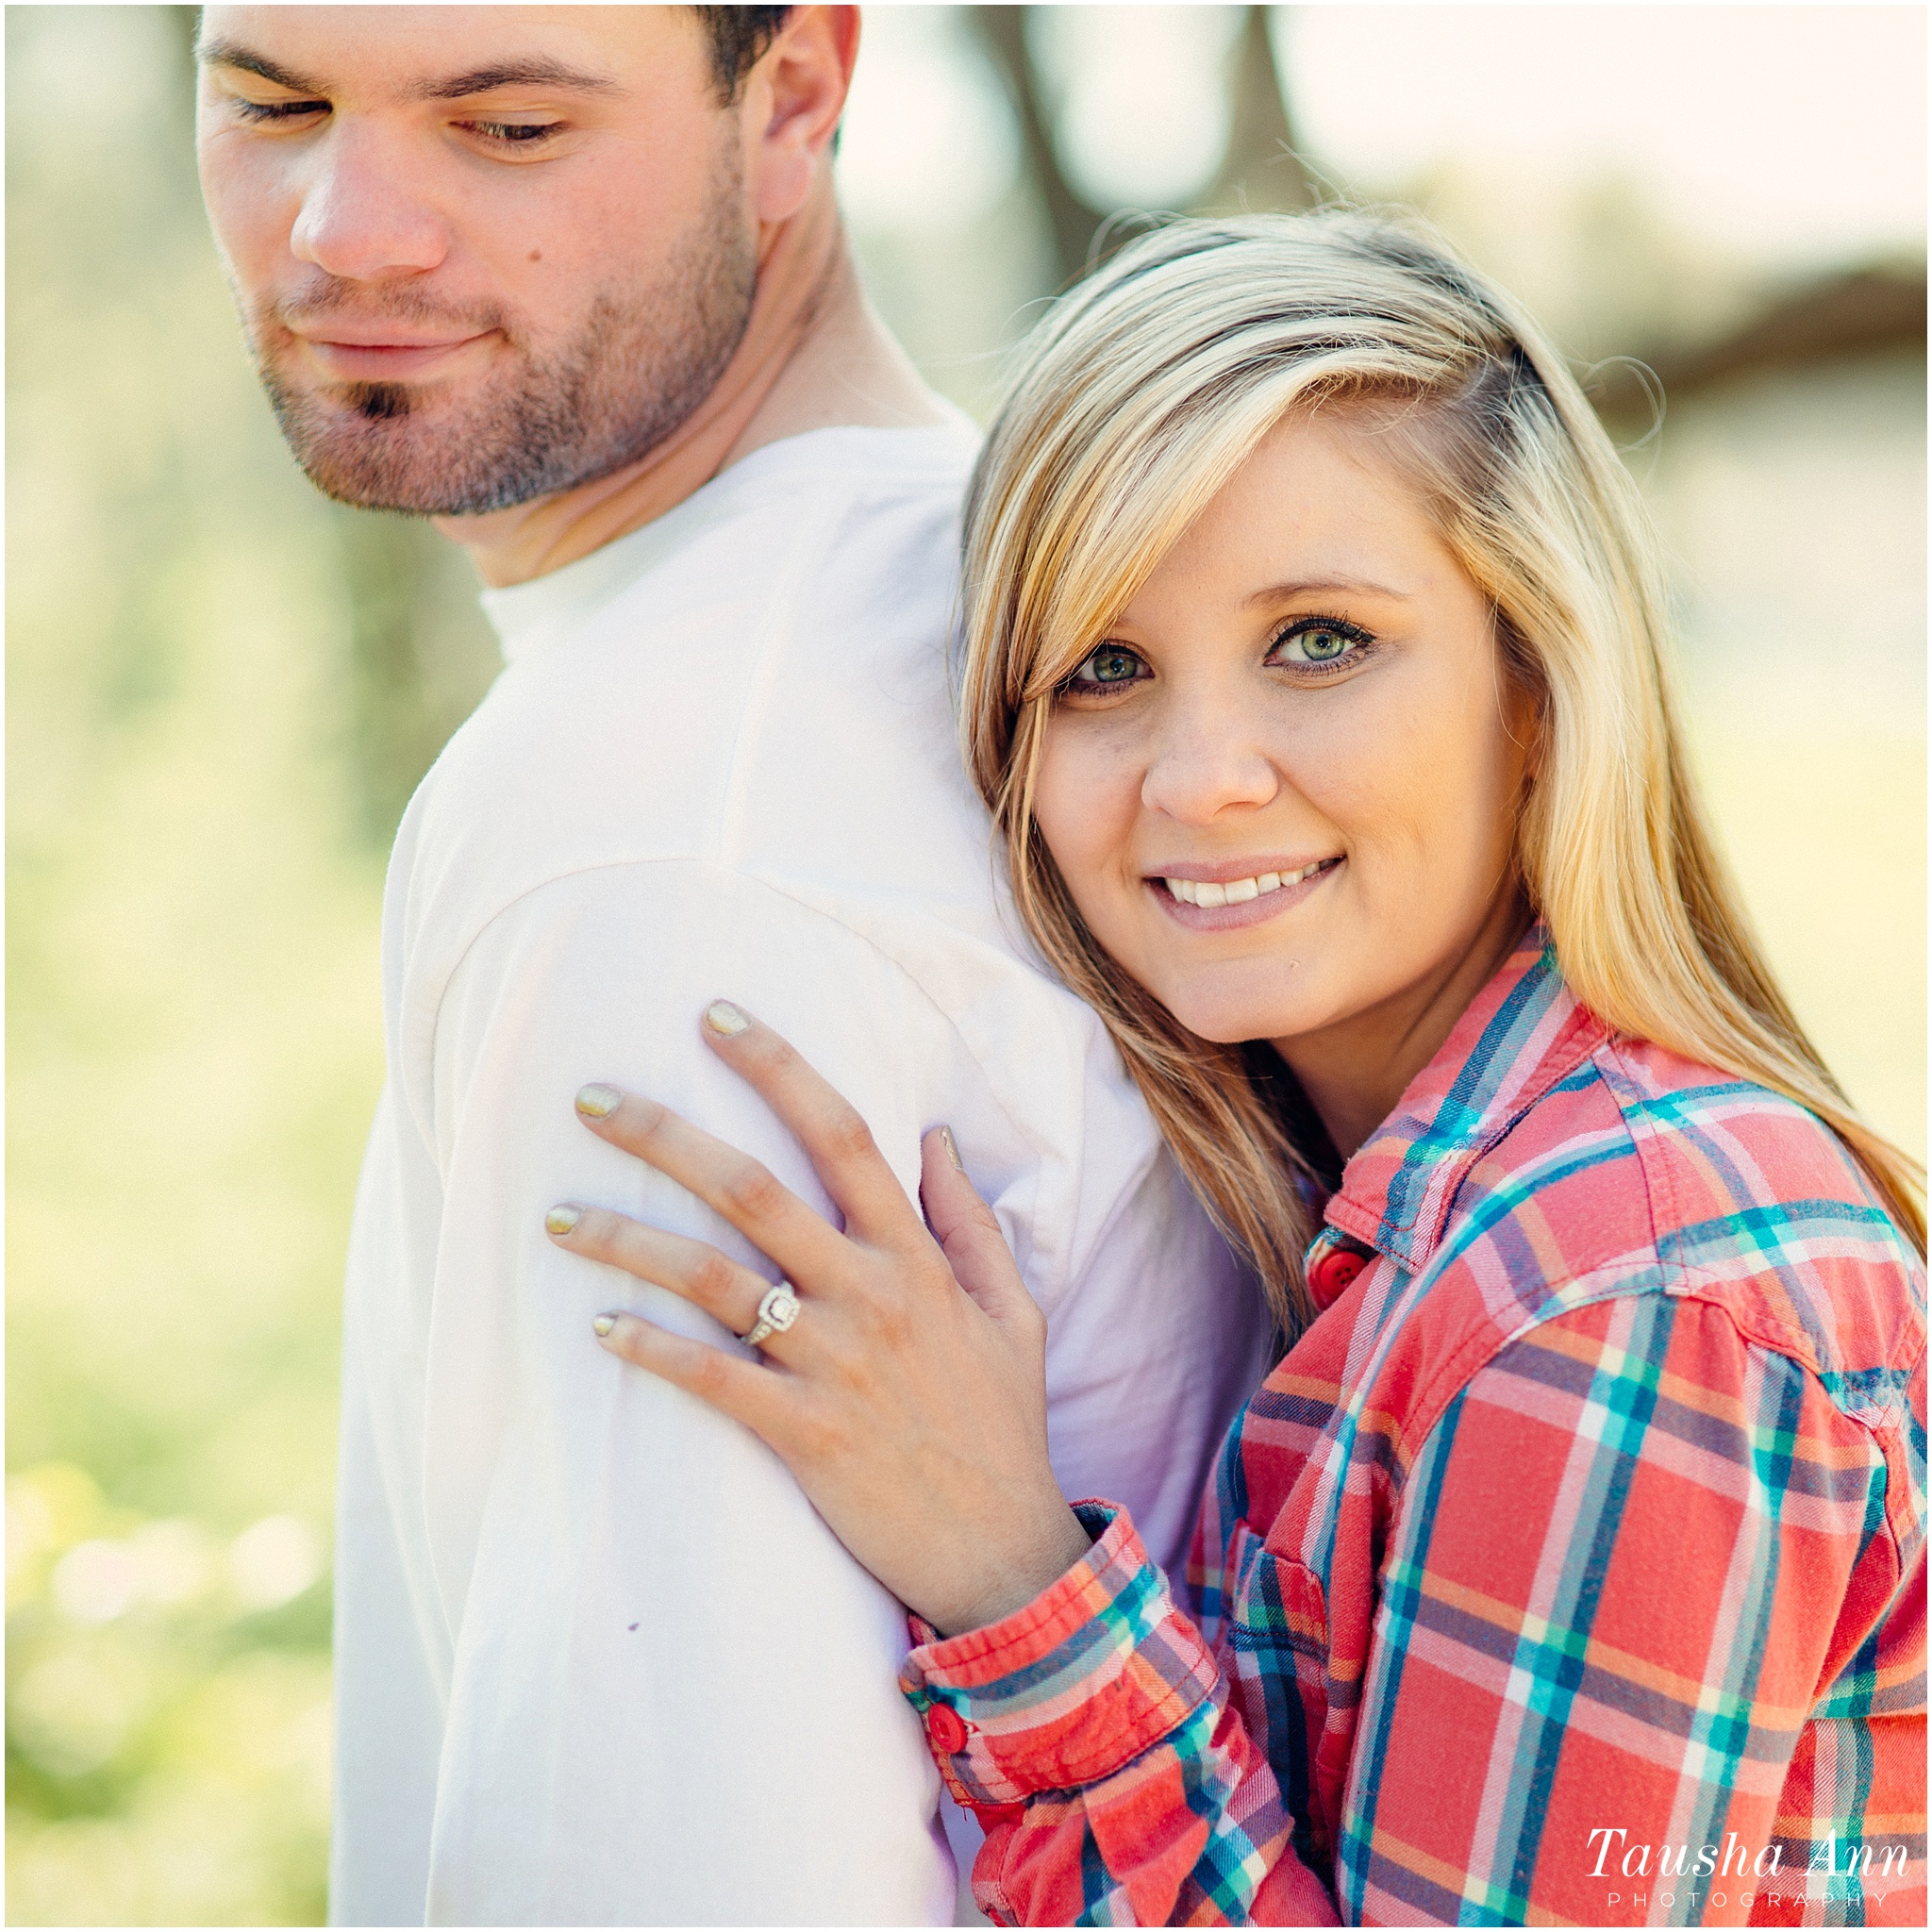 Casey_Brianna_Engagement_Agricultural_Center_Nashville_Wedding_Photography_0006